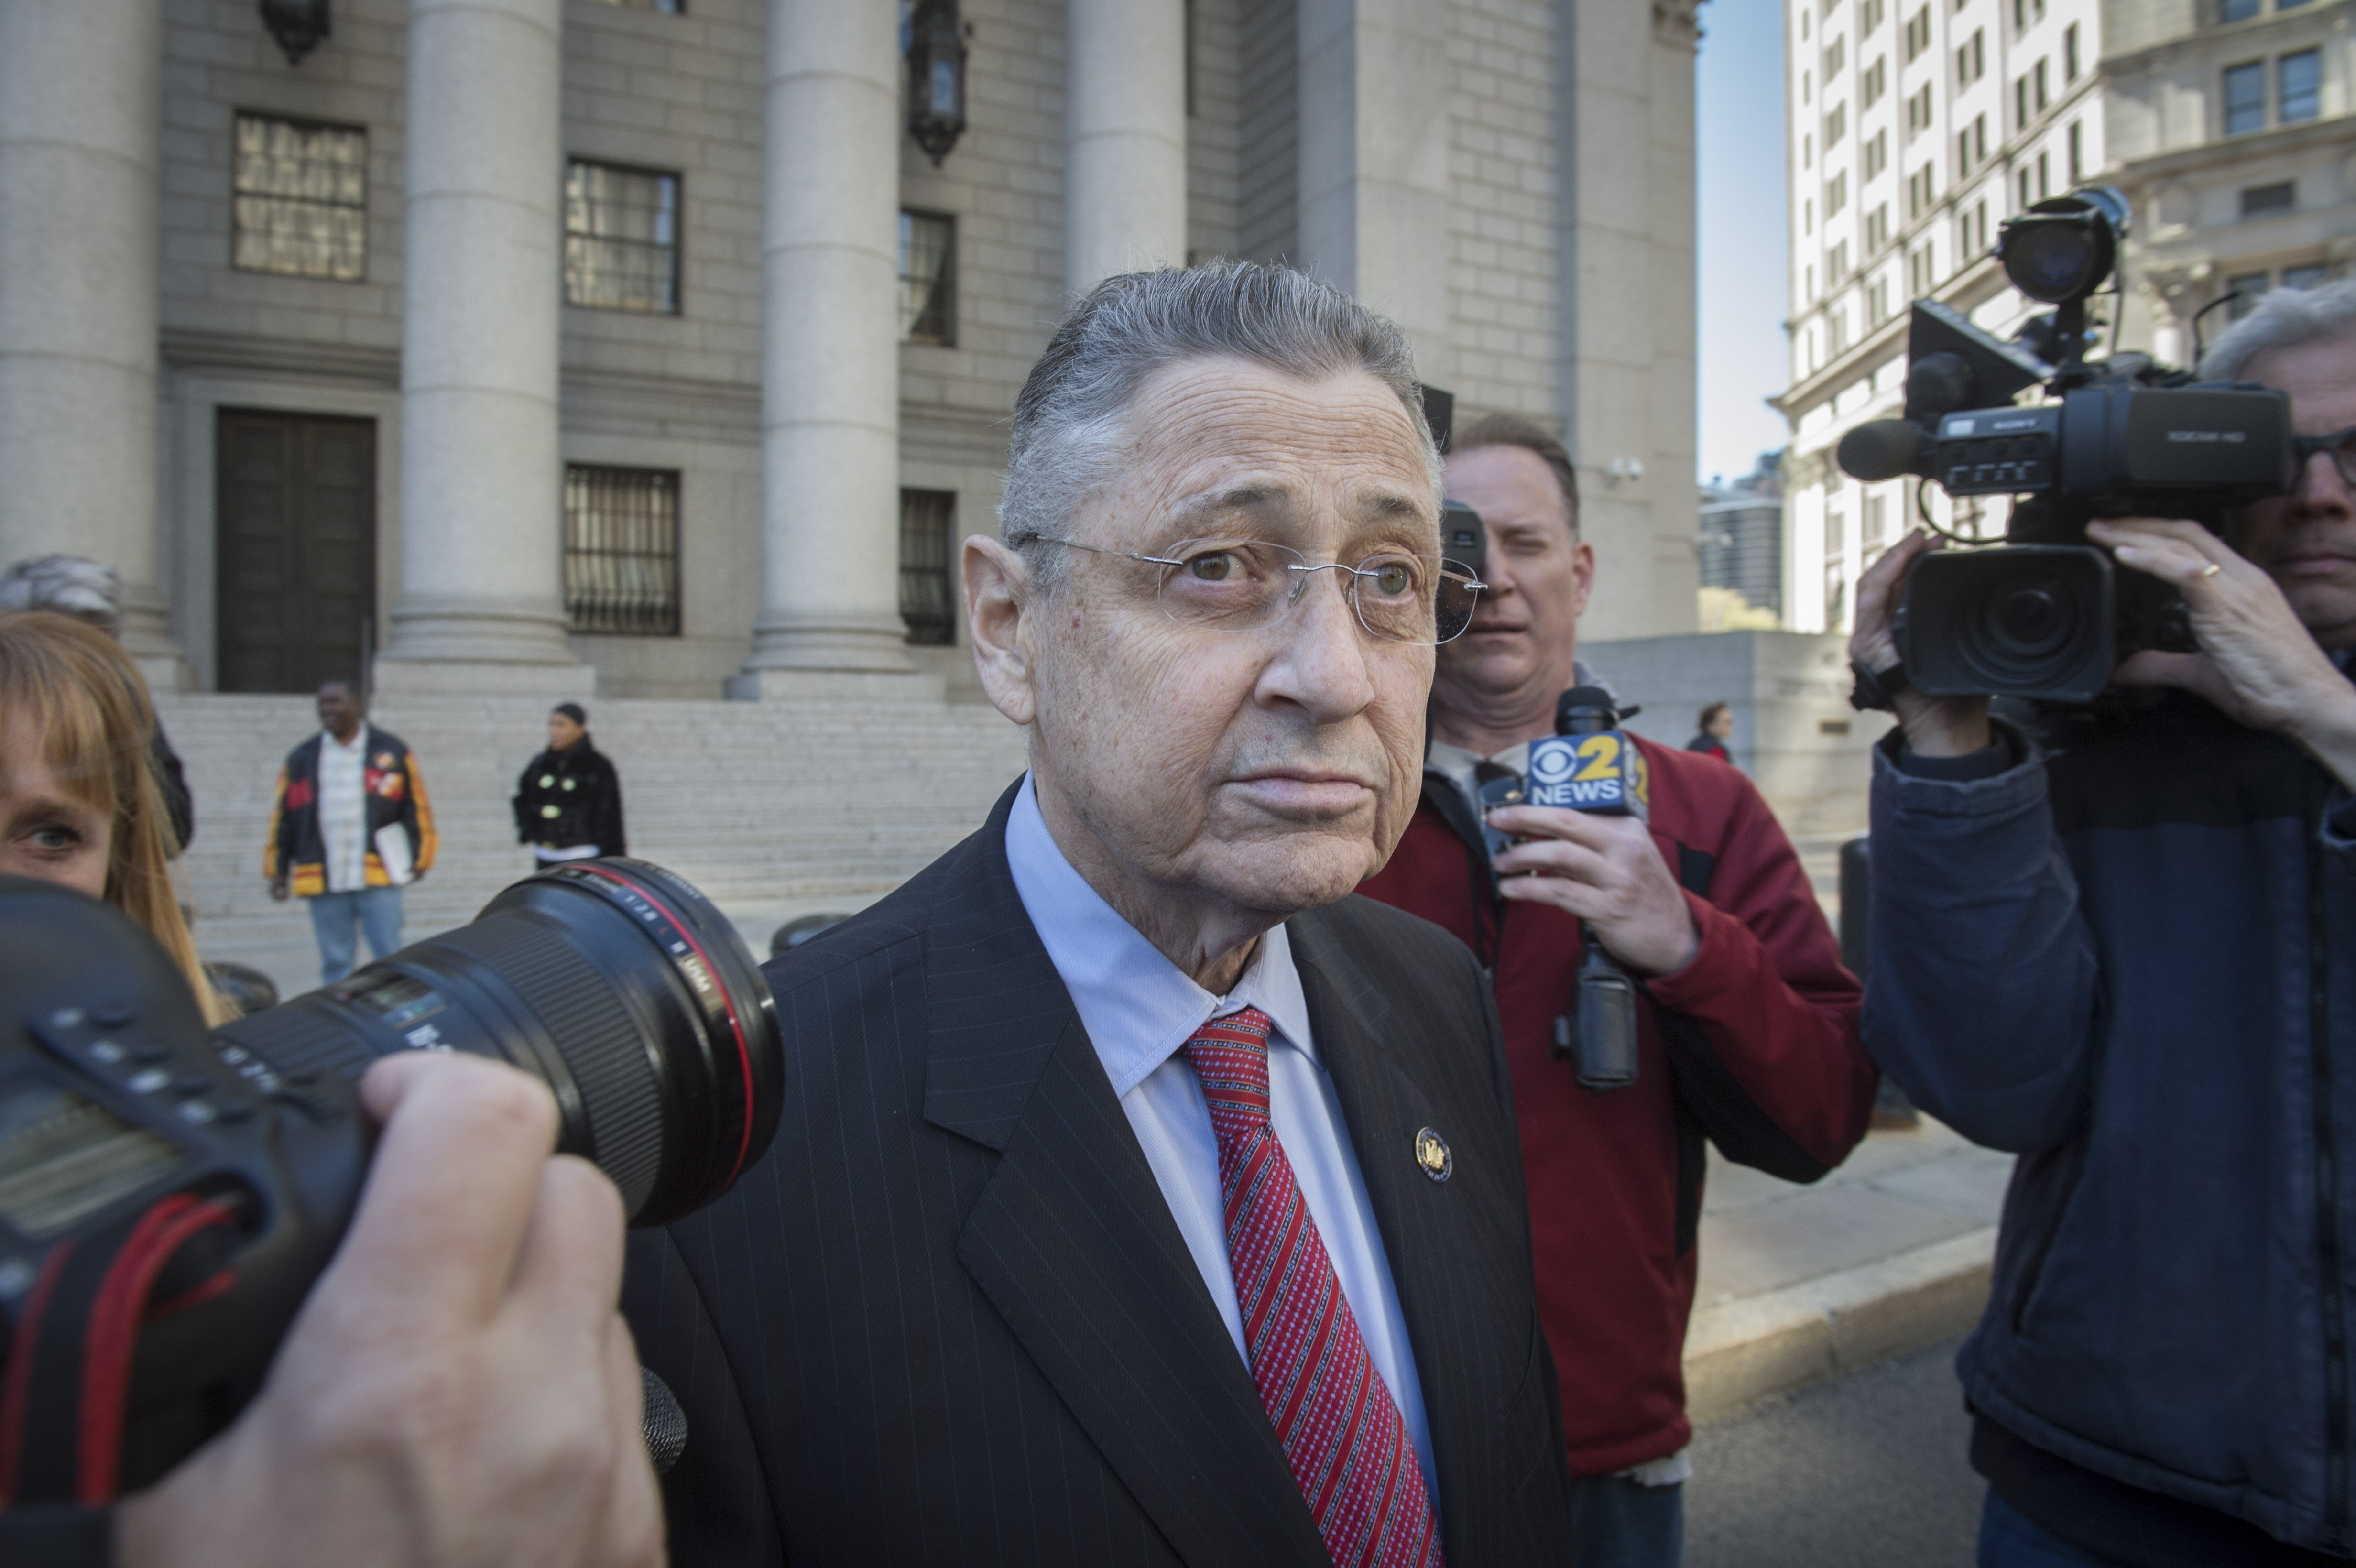 The conviction of former Assembly Speaker Sheldon Silver on corruption charges should have inspired a wave of ethics changes, but didn't. (New York Times photo)